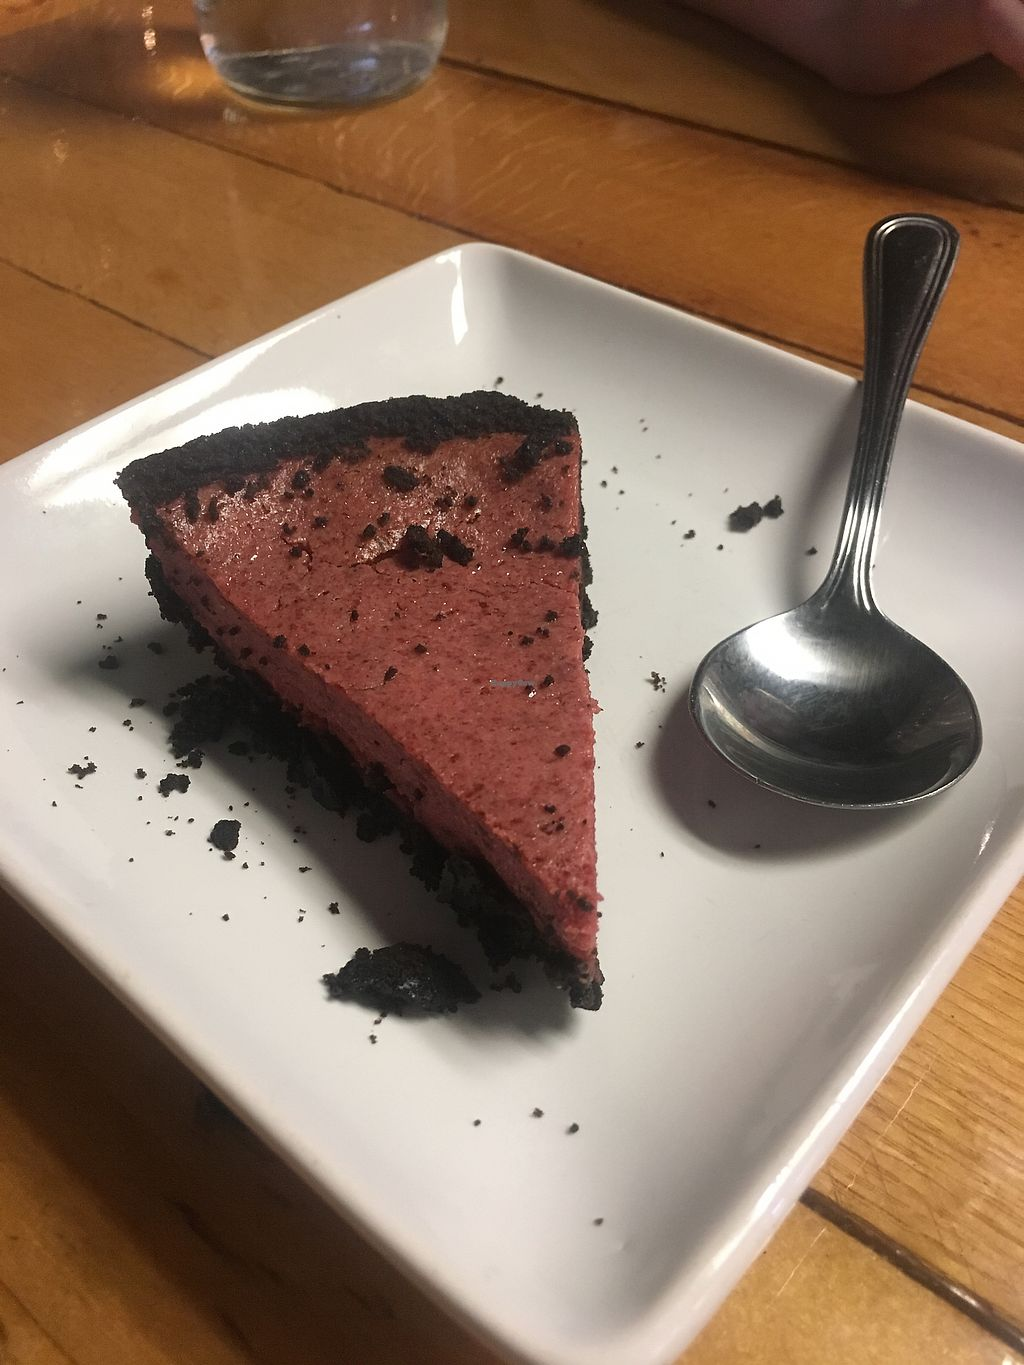 "Photo of Paisley Vegan Kitchen  by <a href=""/members/profile/CarrieAPash"">CarrieAPash</a> <br/>Red Velvet cheesecake  <br/> July 23, 2017  - <a href='/contact/abuse/image/71867/283780'>Report</a>"